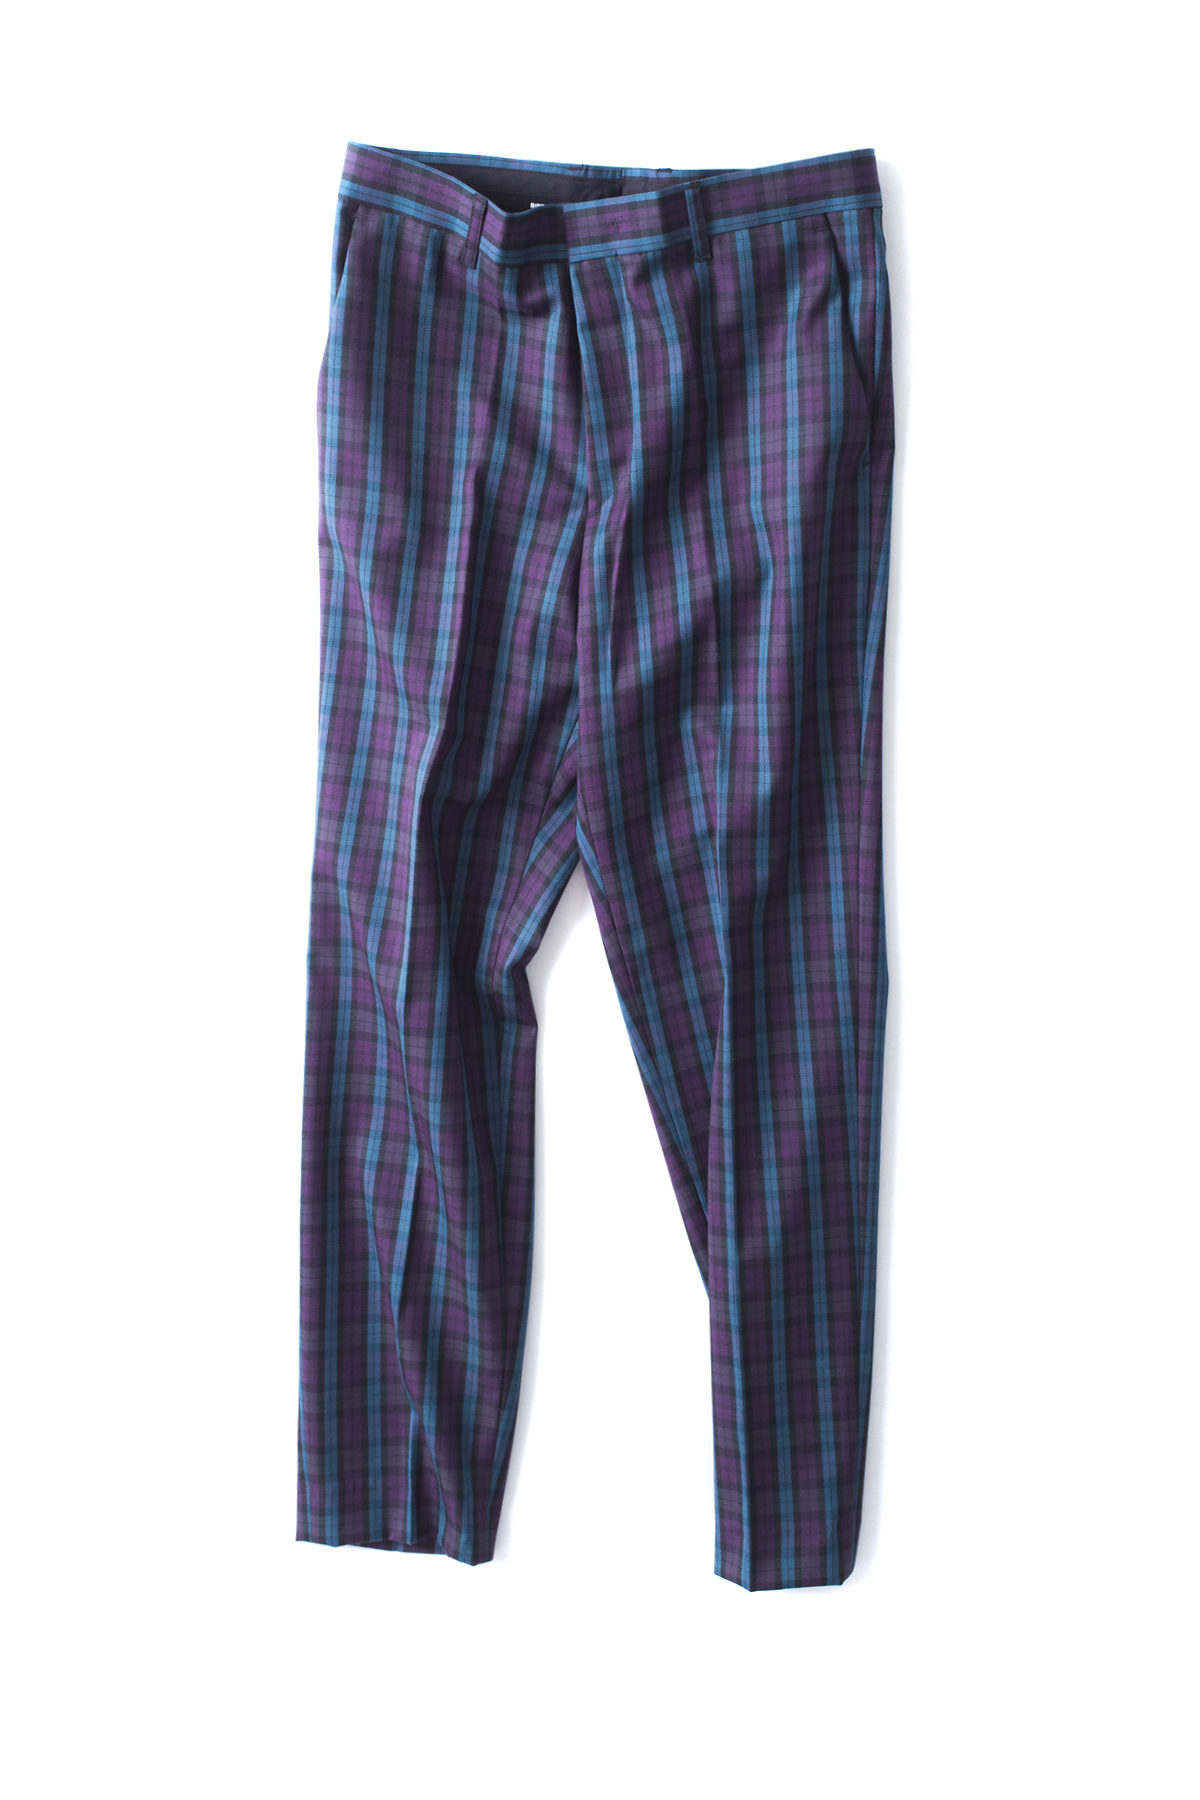 BIRTHDAYSUIT : Wool Check Slim Pants (Purple)